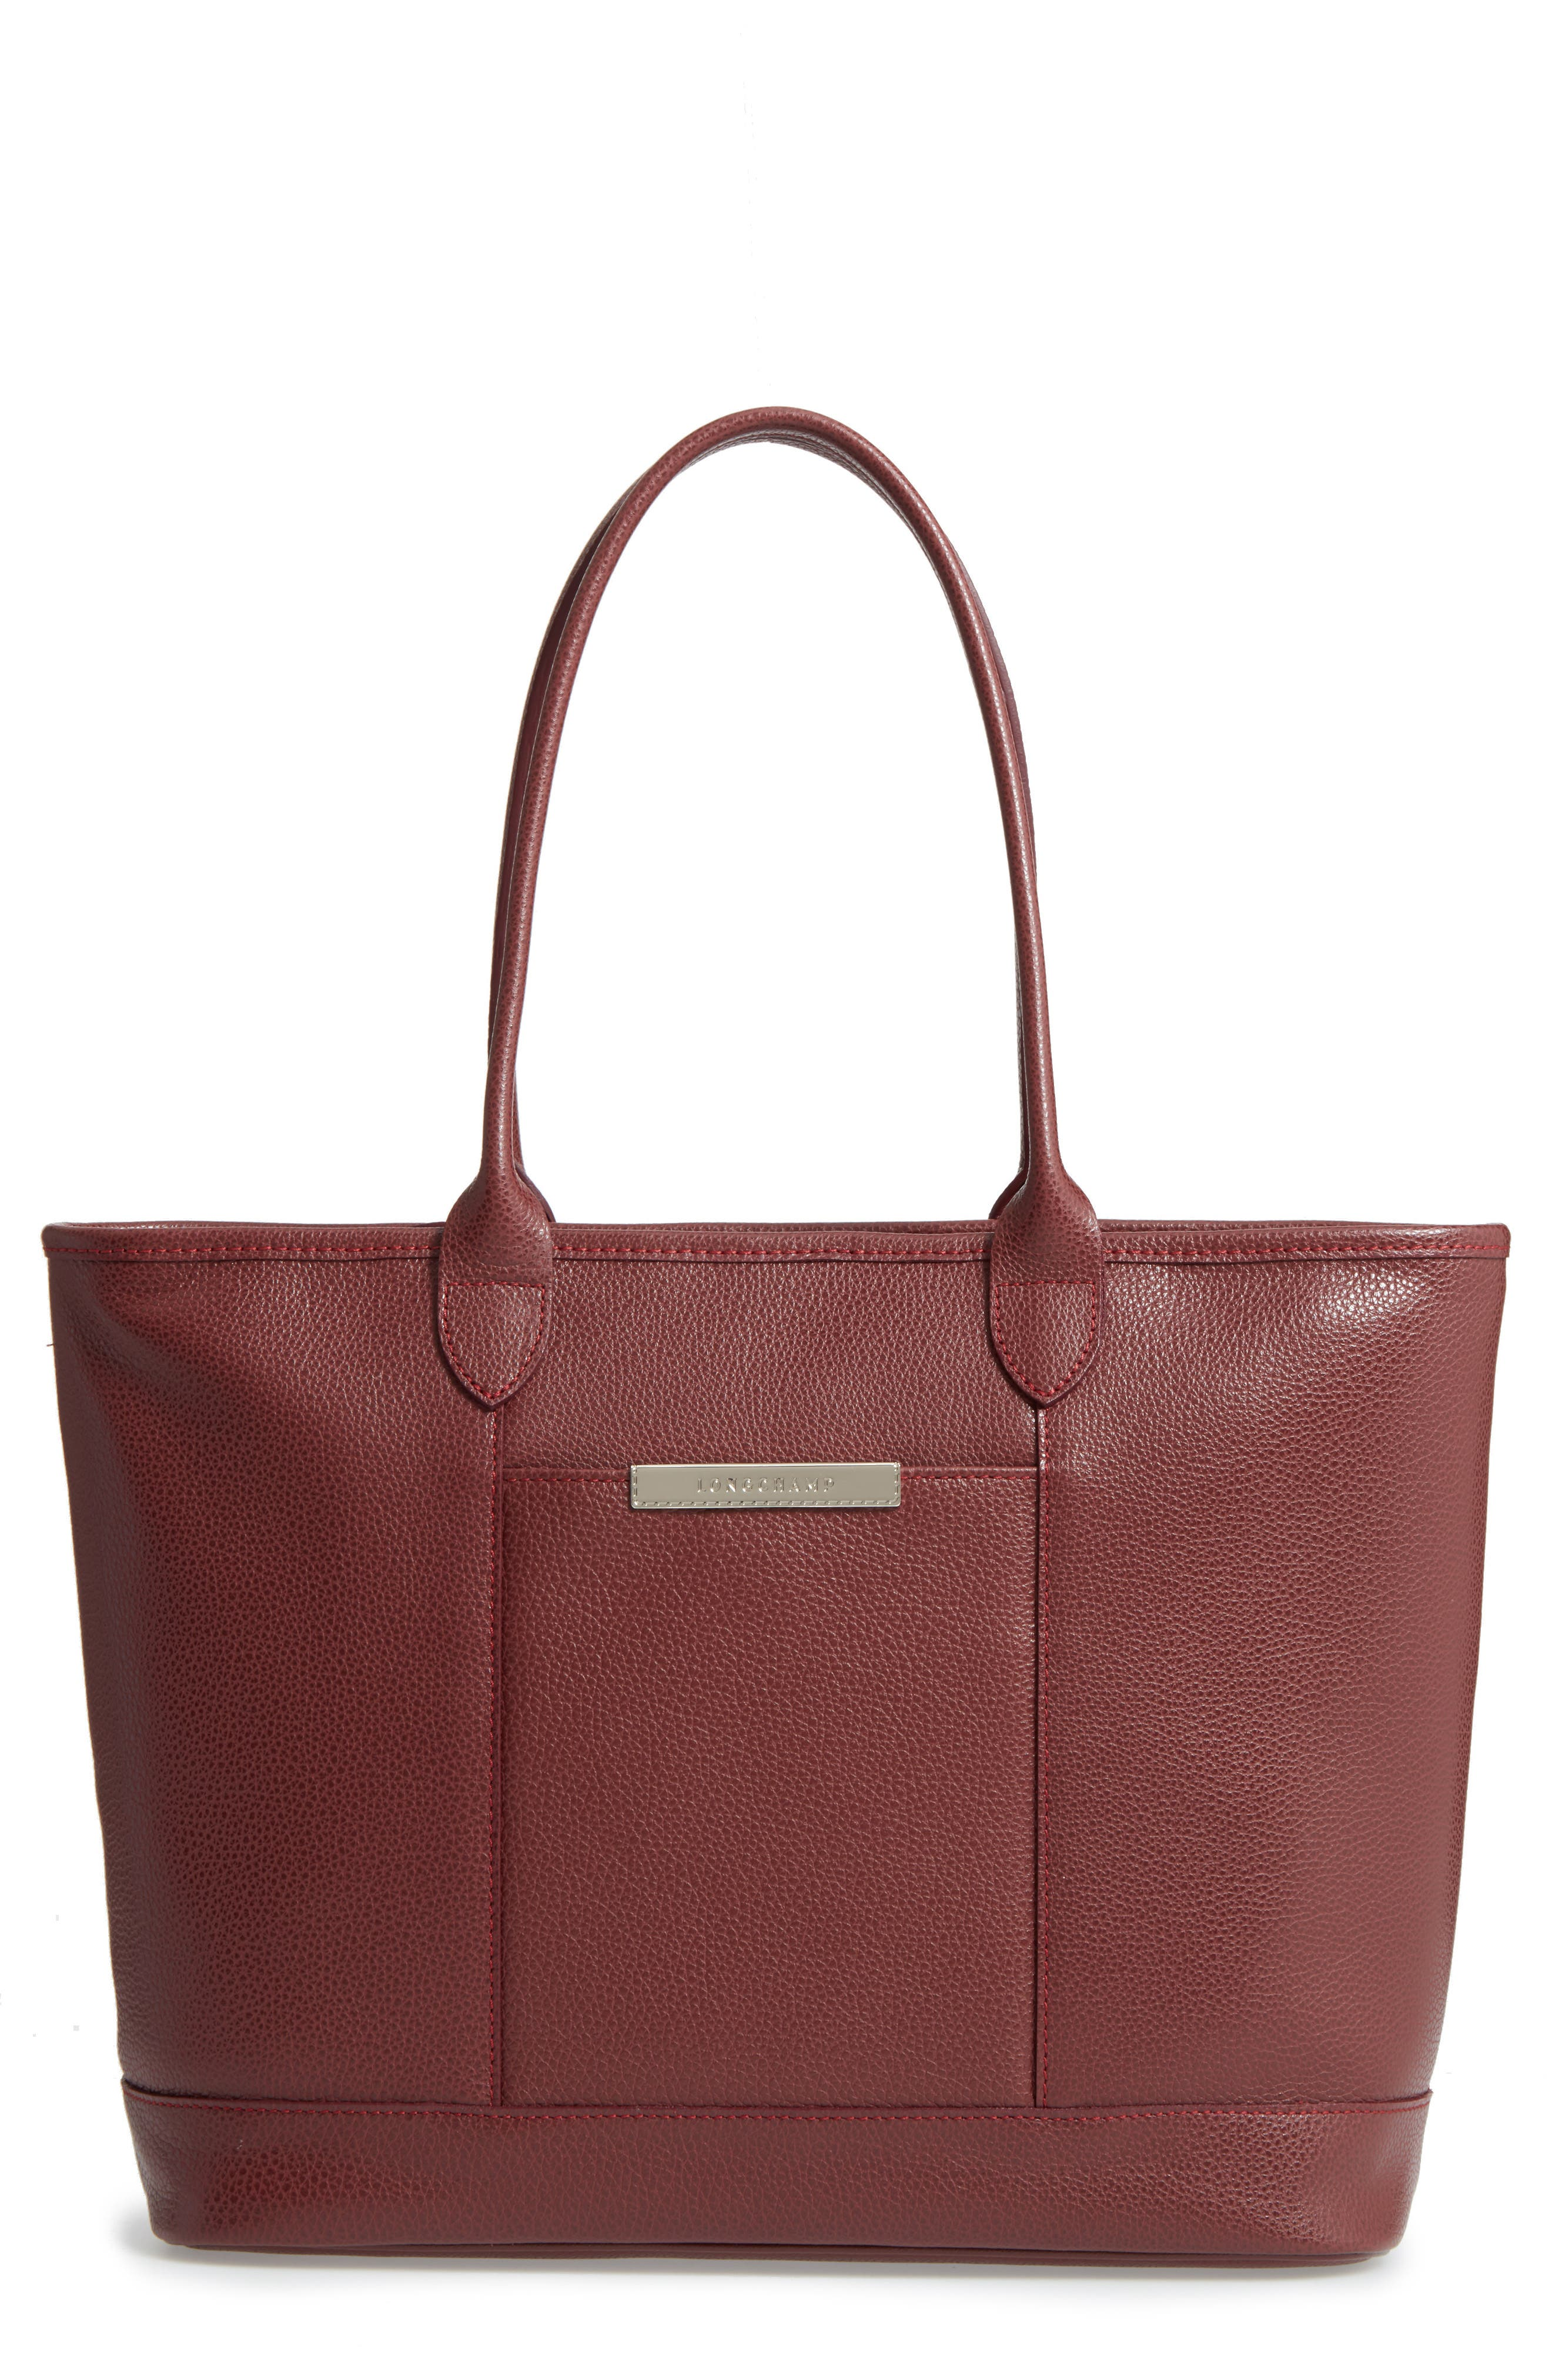 Alternate Image 1 Selected - Longchamp 'Veau' Leather Tote